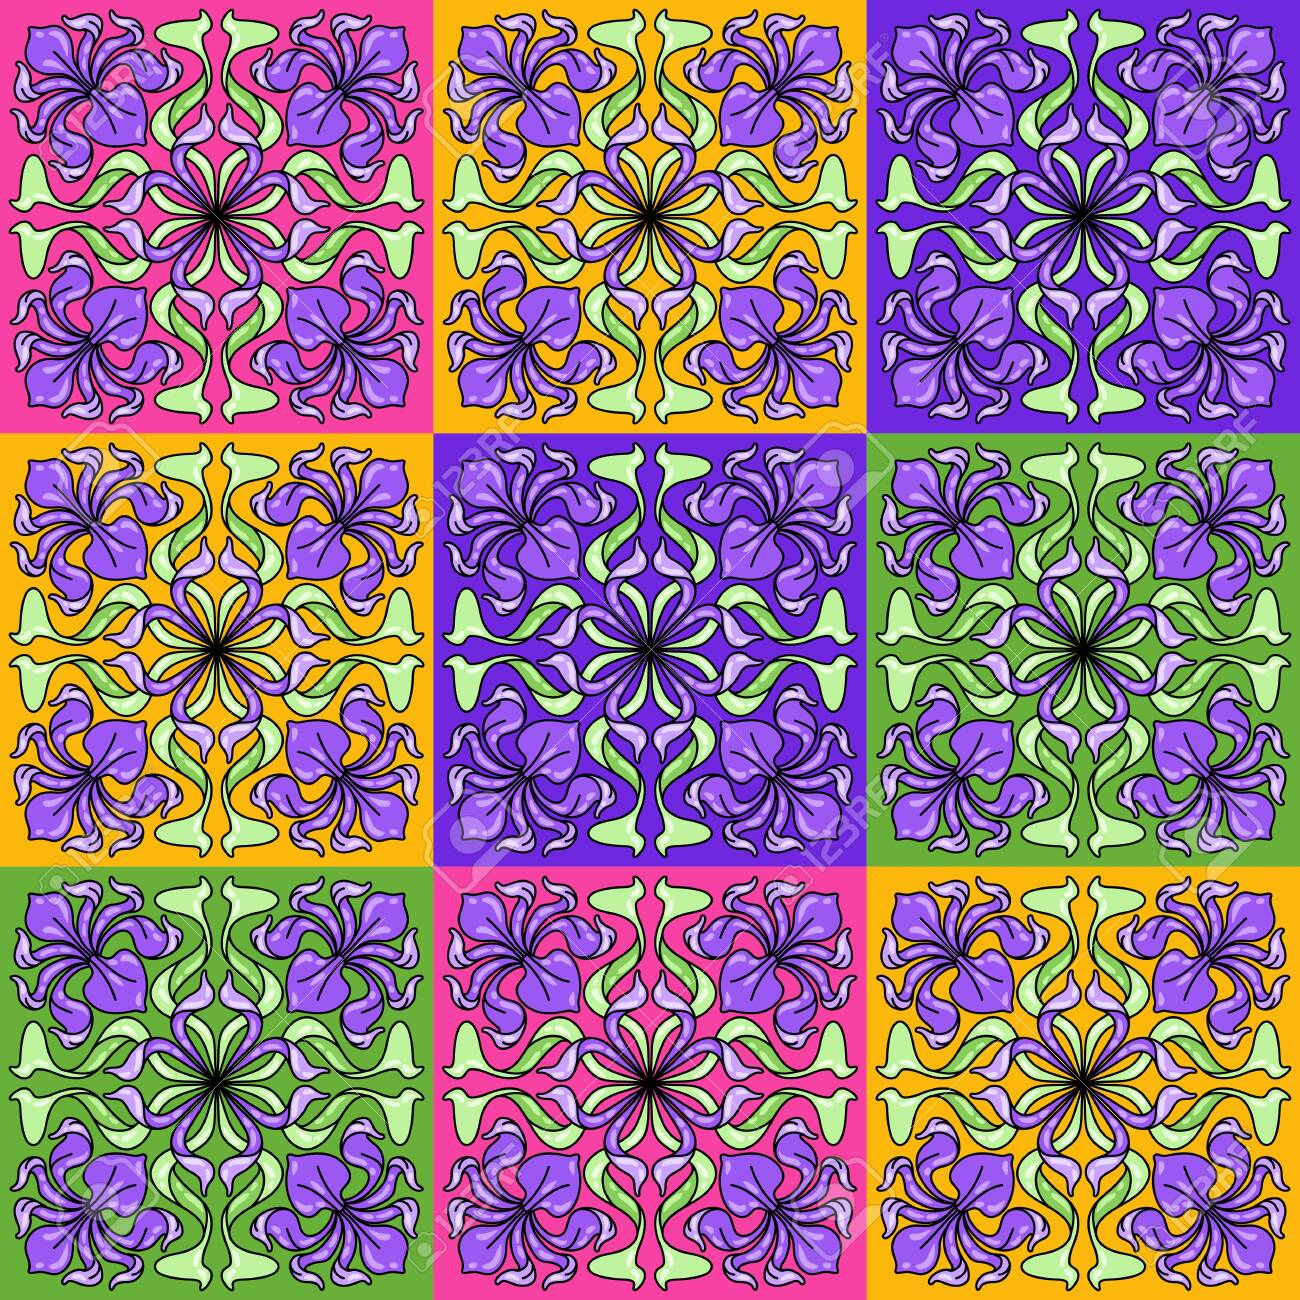 Art Nouveau ceramic tile pattern. Floral motifs in retro style. Vintage pottery with flowers and leaves. - 146728596